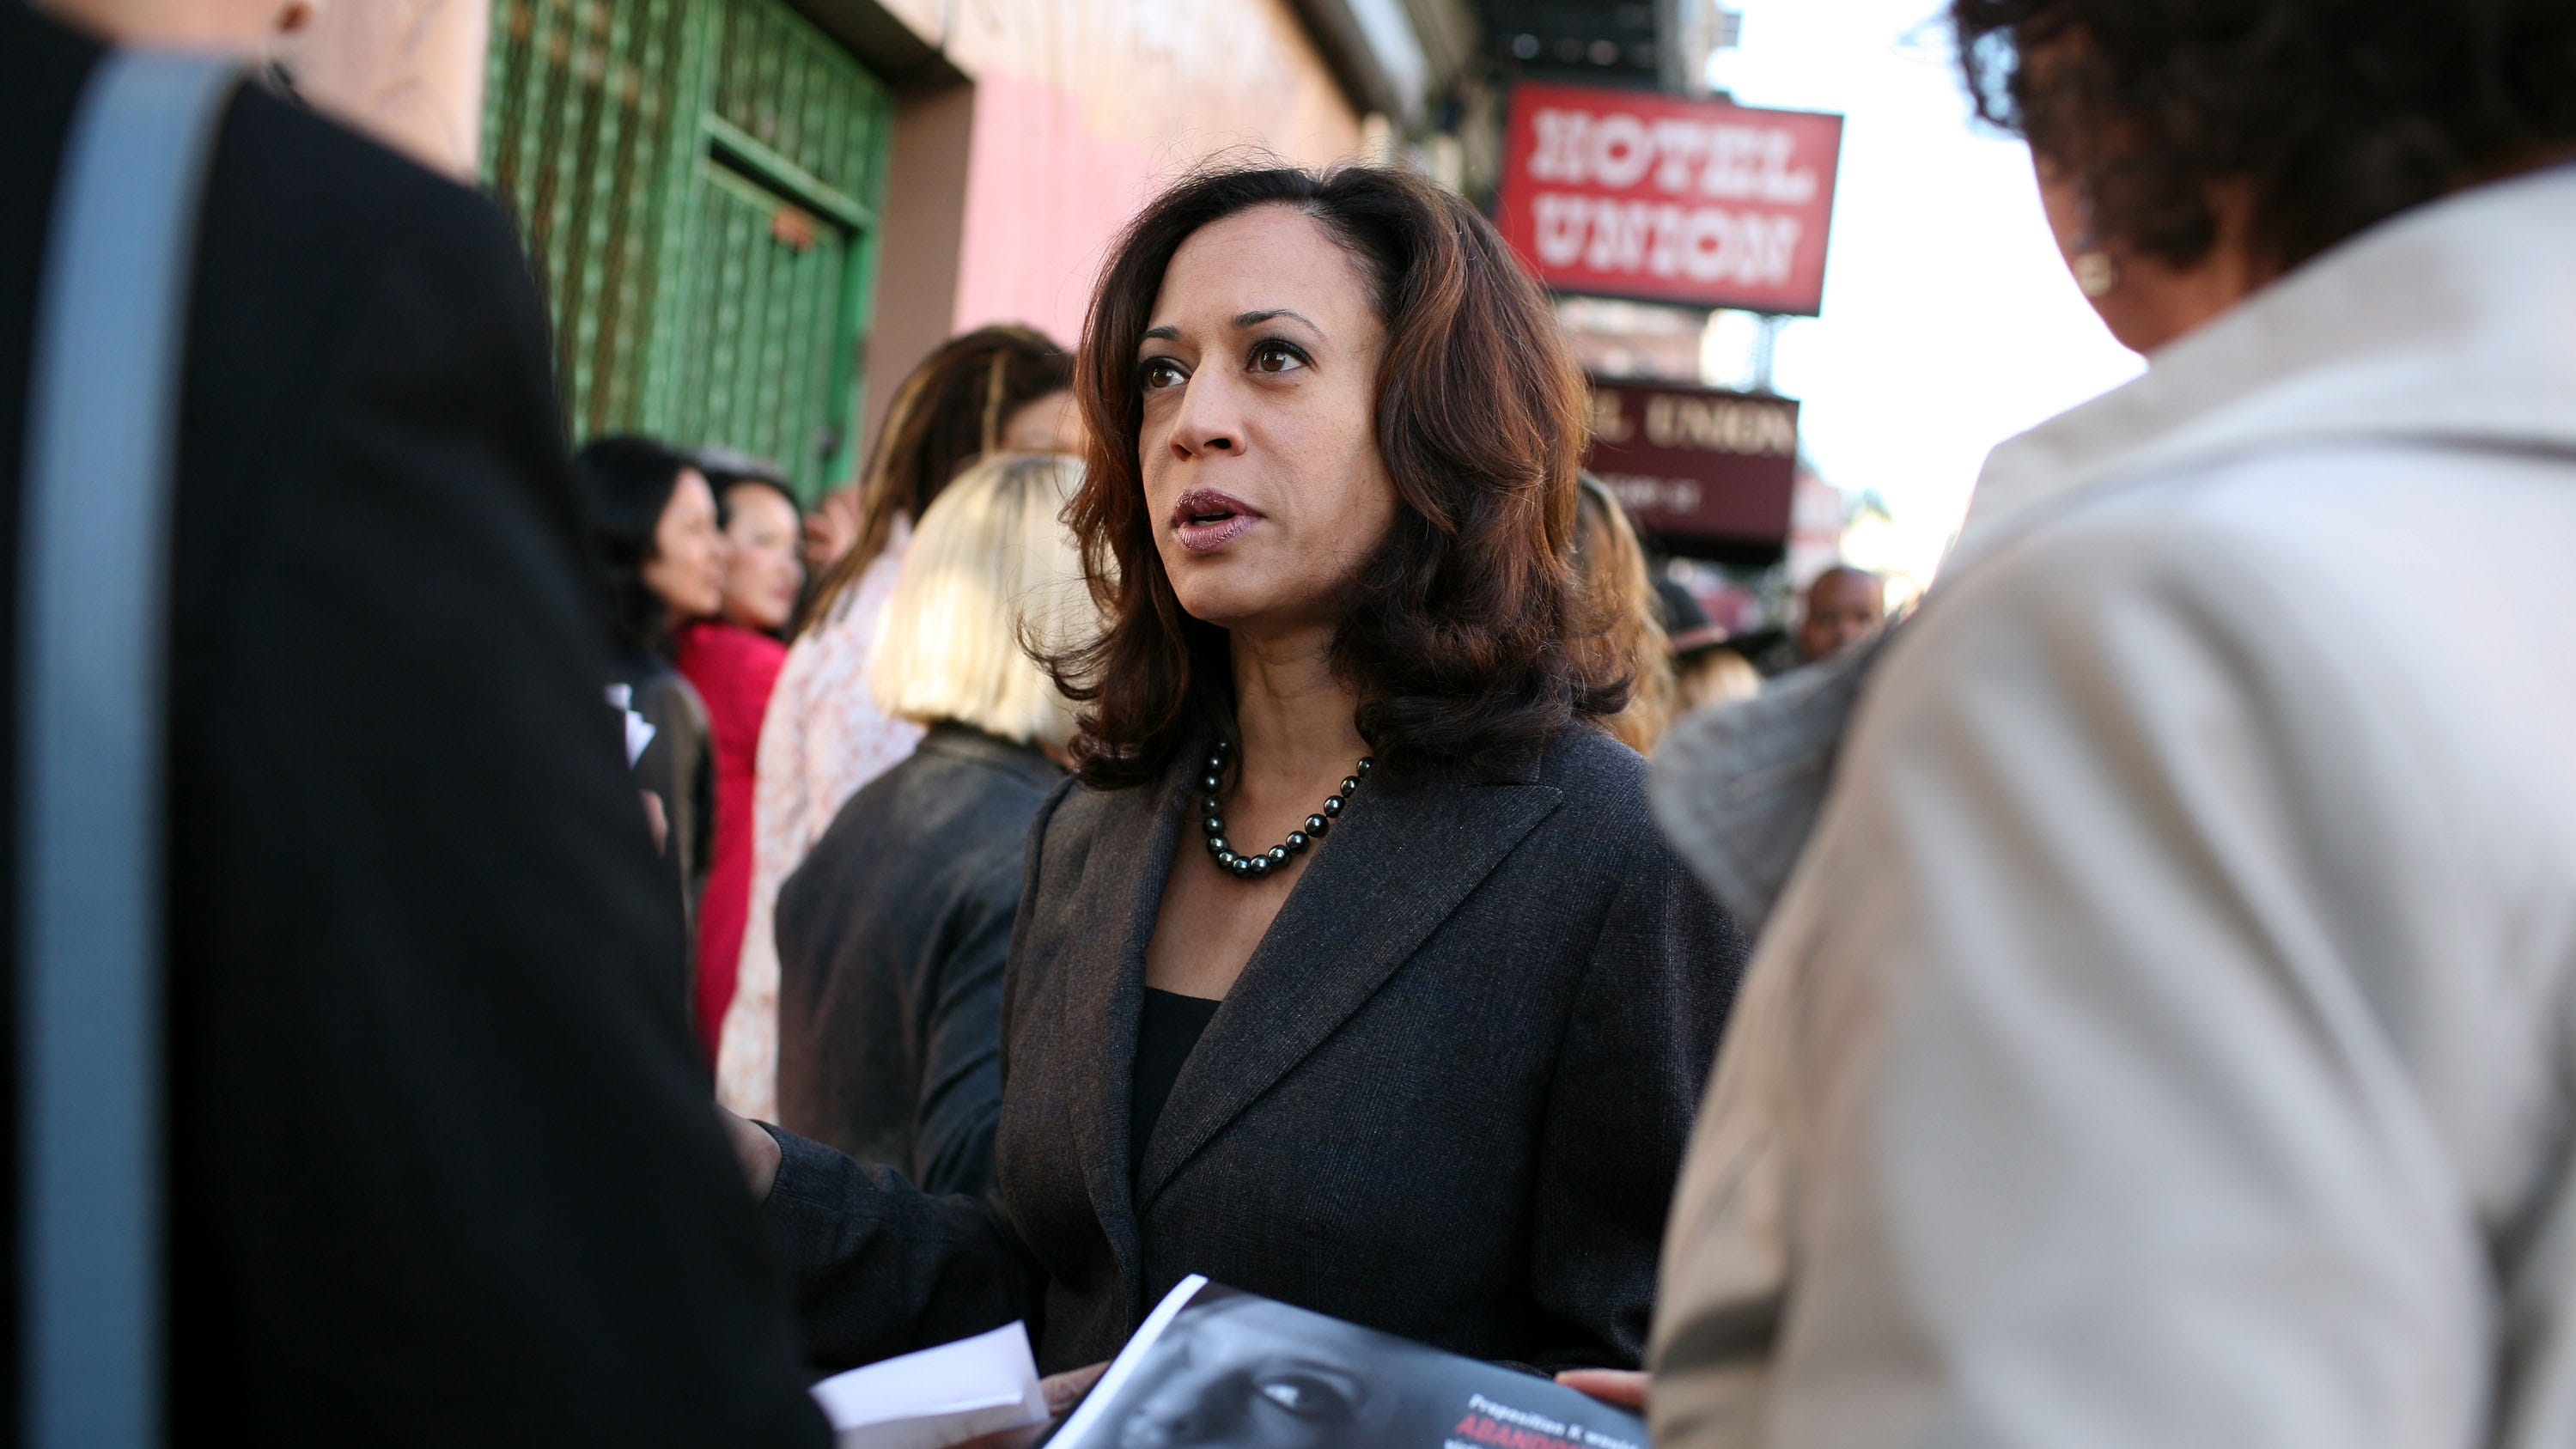 San Francisco District Attorney Kamala Harris speaks to supporters before a No on K press conference October 29, 2008 in San Francisco. San Francisco ballot measure Proposition K seeks to stop enforcing laws against prostitution.